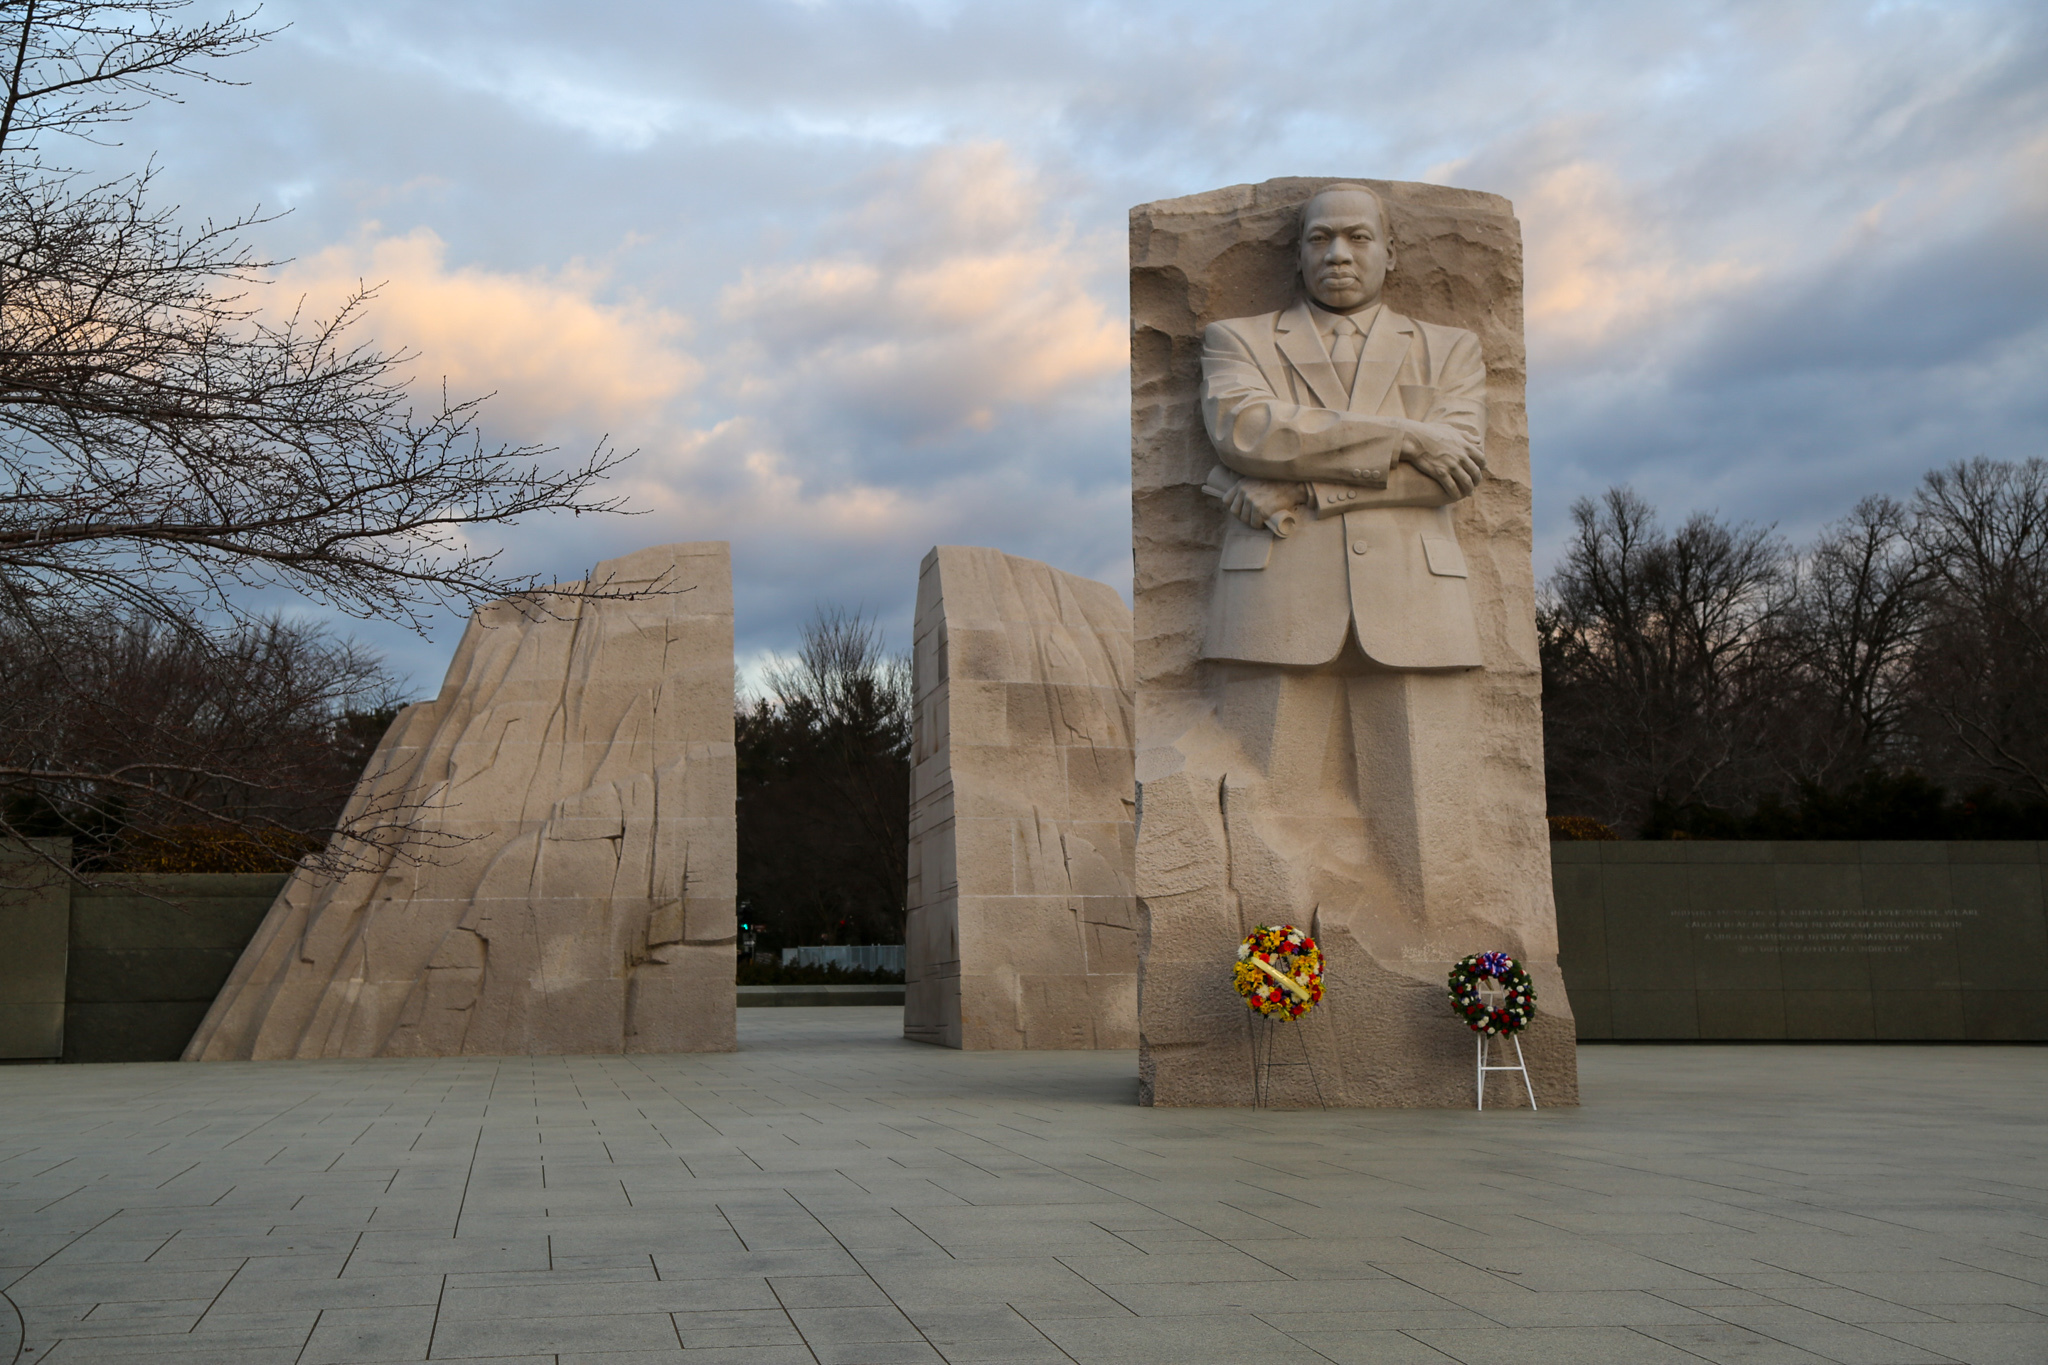 Martin Luther King Monument in Washington D.C., Jan.18, 2021. National Guard Soldiers and Airmen from several states have traveled to Washington to provide support to federal and district authorities leading up to the 59th presidential inauguration.  (U.S. Army National Guard photo by Spc. Christopher Hall)